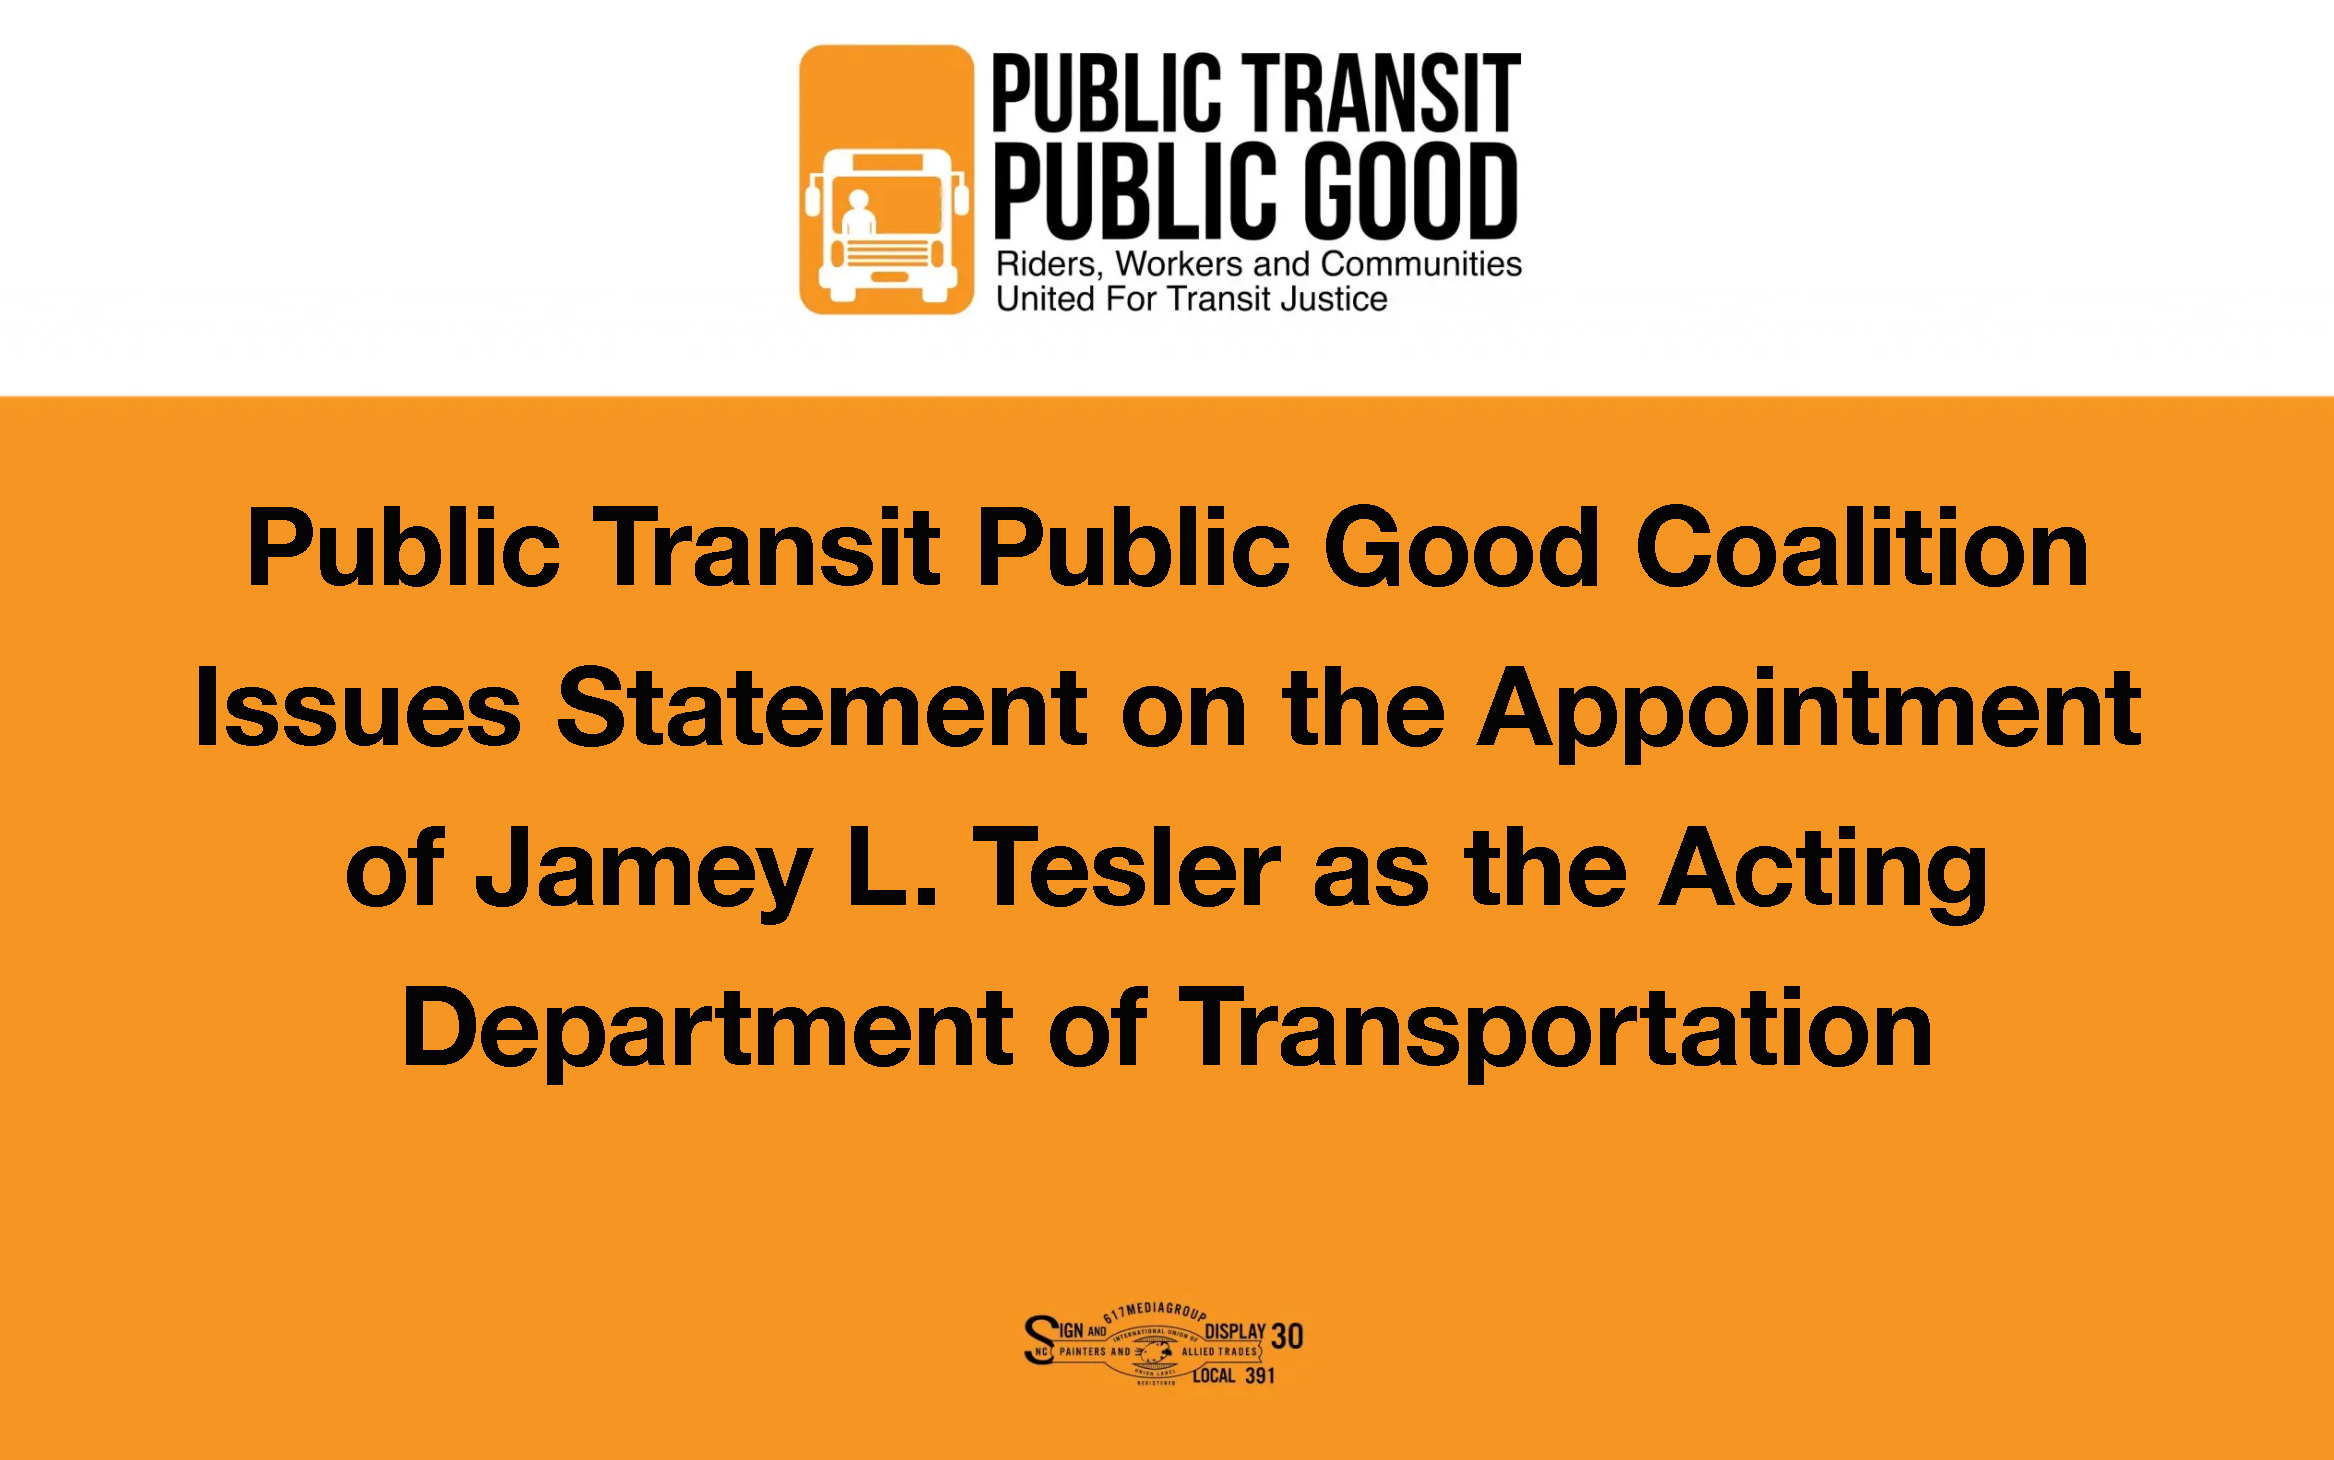 Public Transit Public Good Coalition Issues Statement on the Appointment of Jamey L. Tesler as the Acting Department of Transportation Secretary